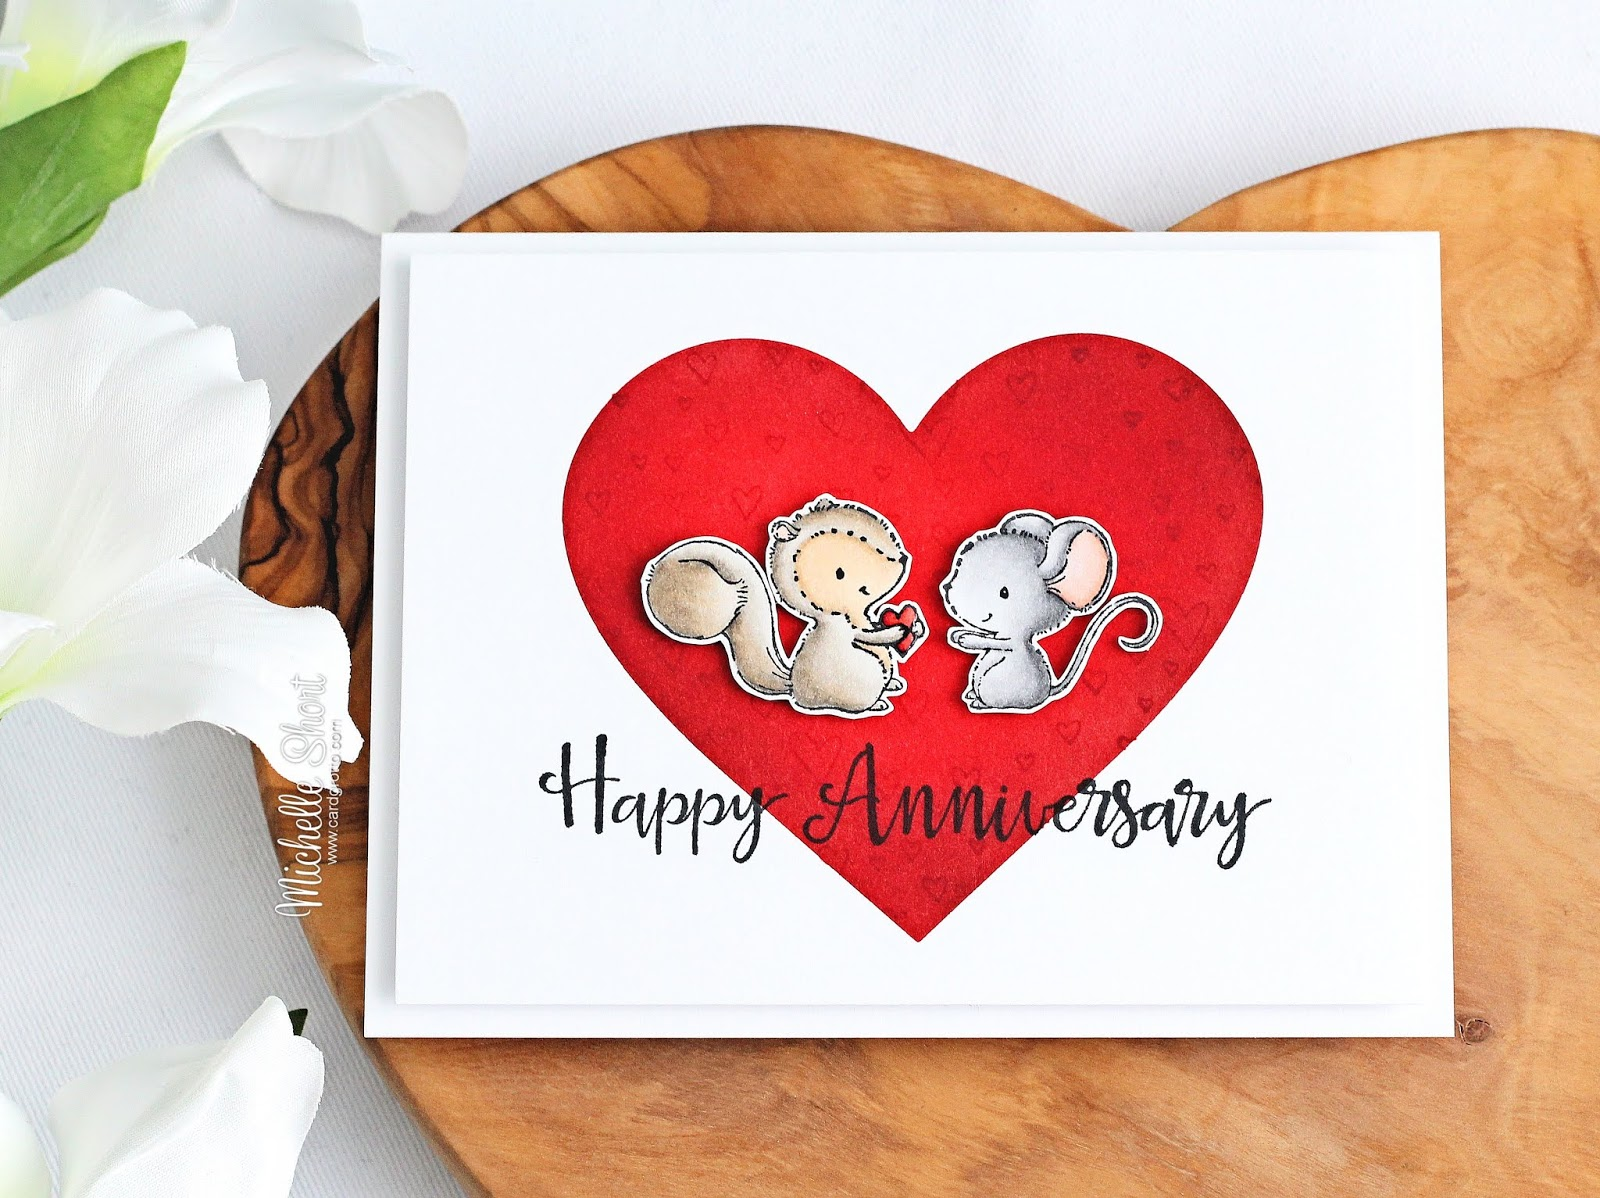 the card grotto anniversary heart